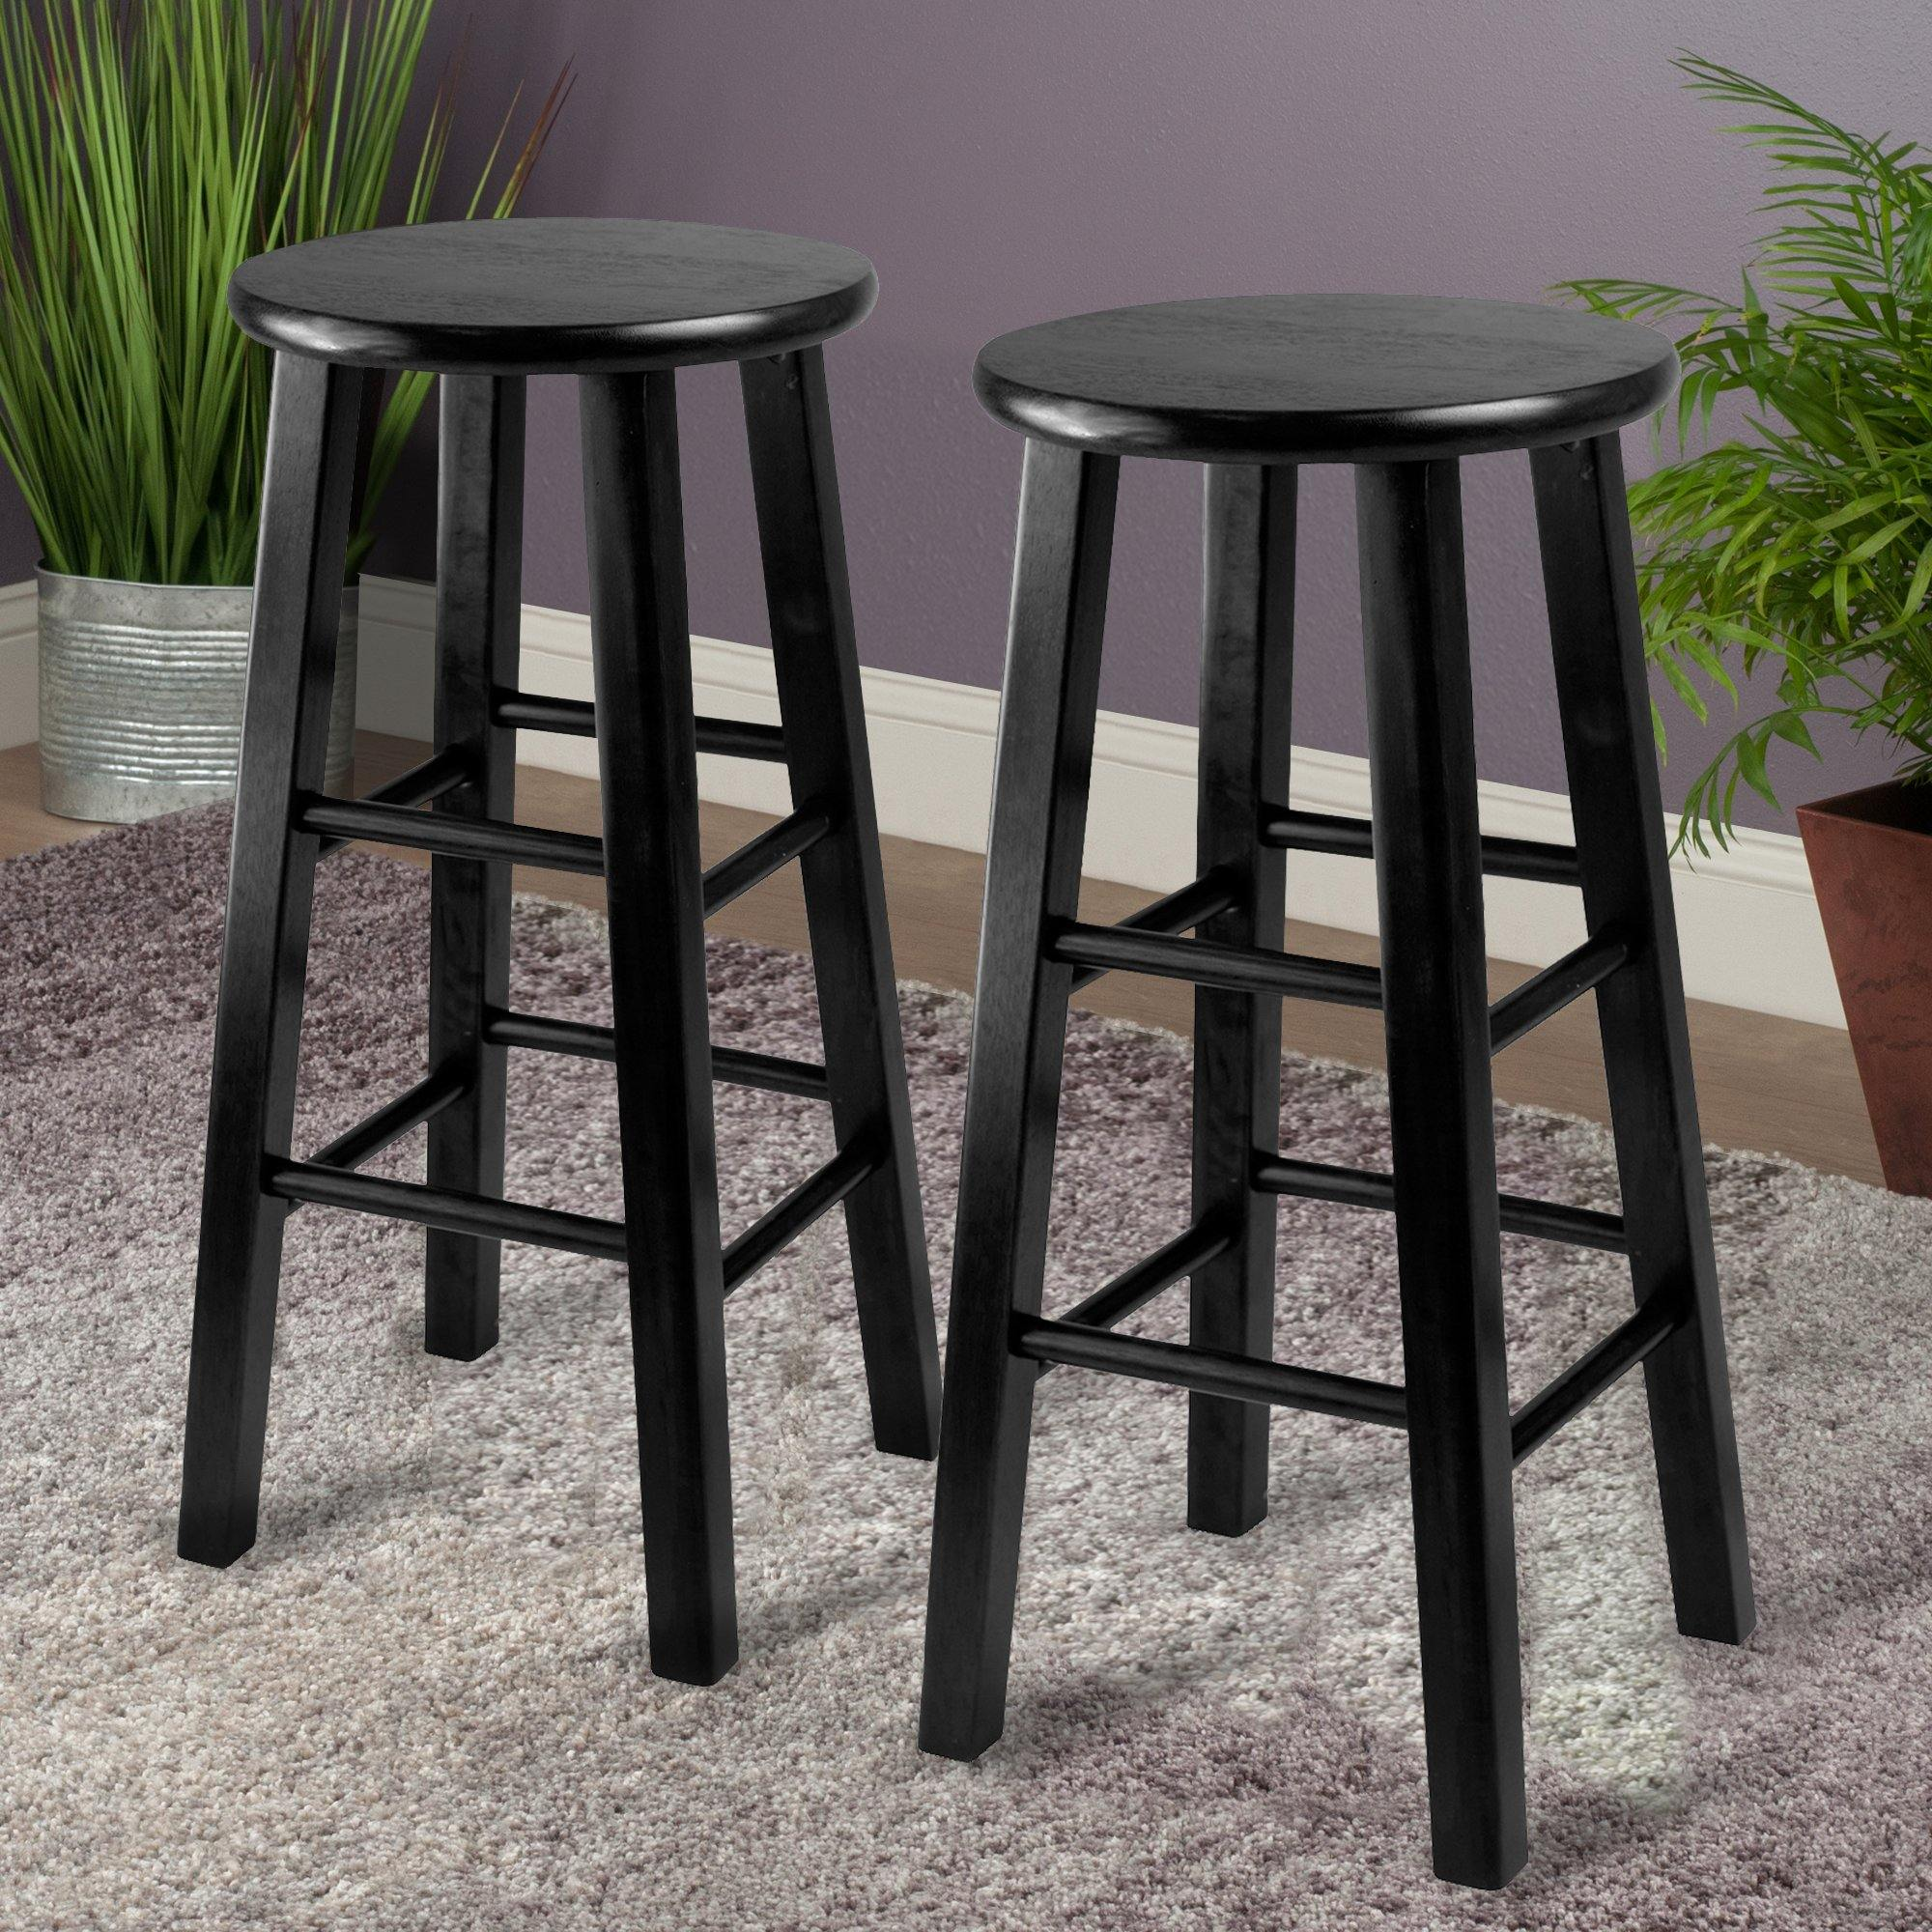 Pacey Counter Stools, 2-Pc Set, Black - My USA Furniture